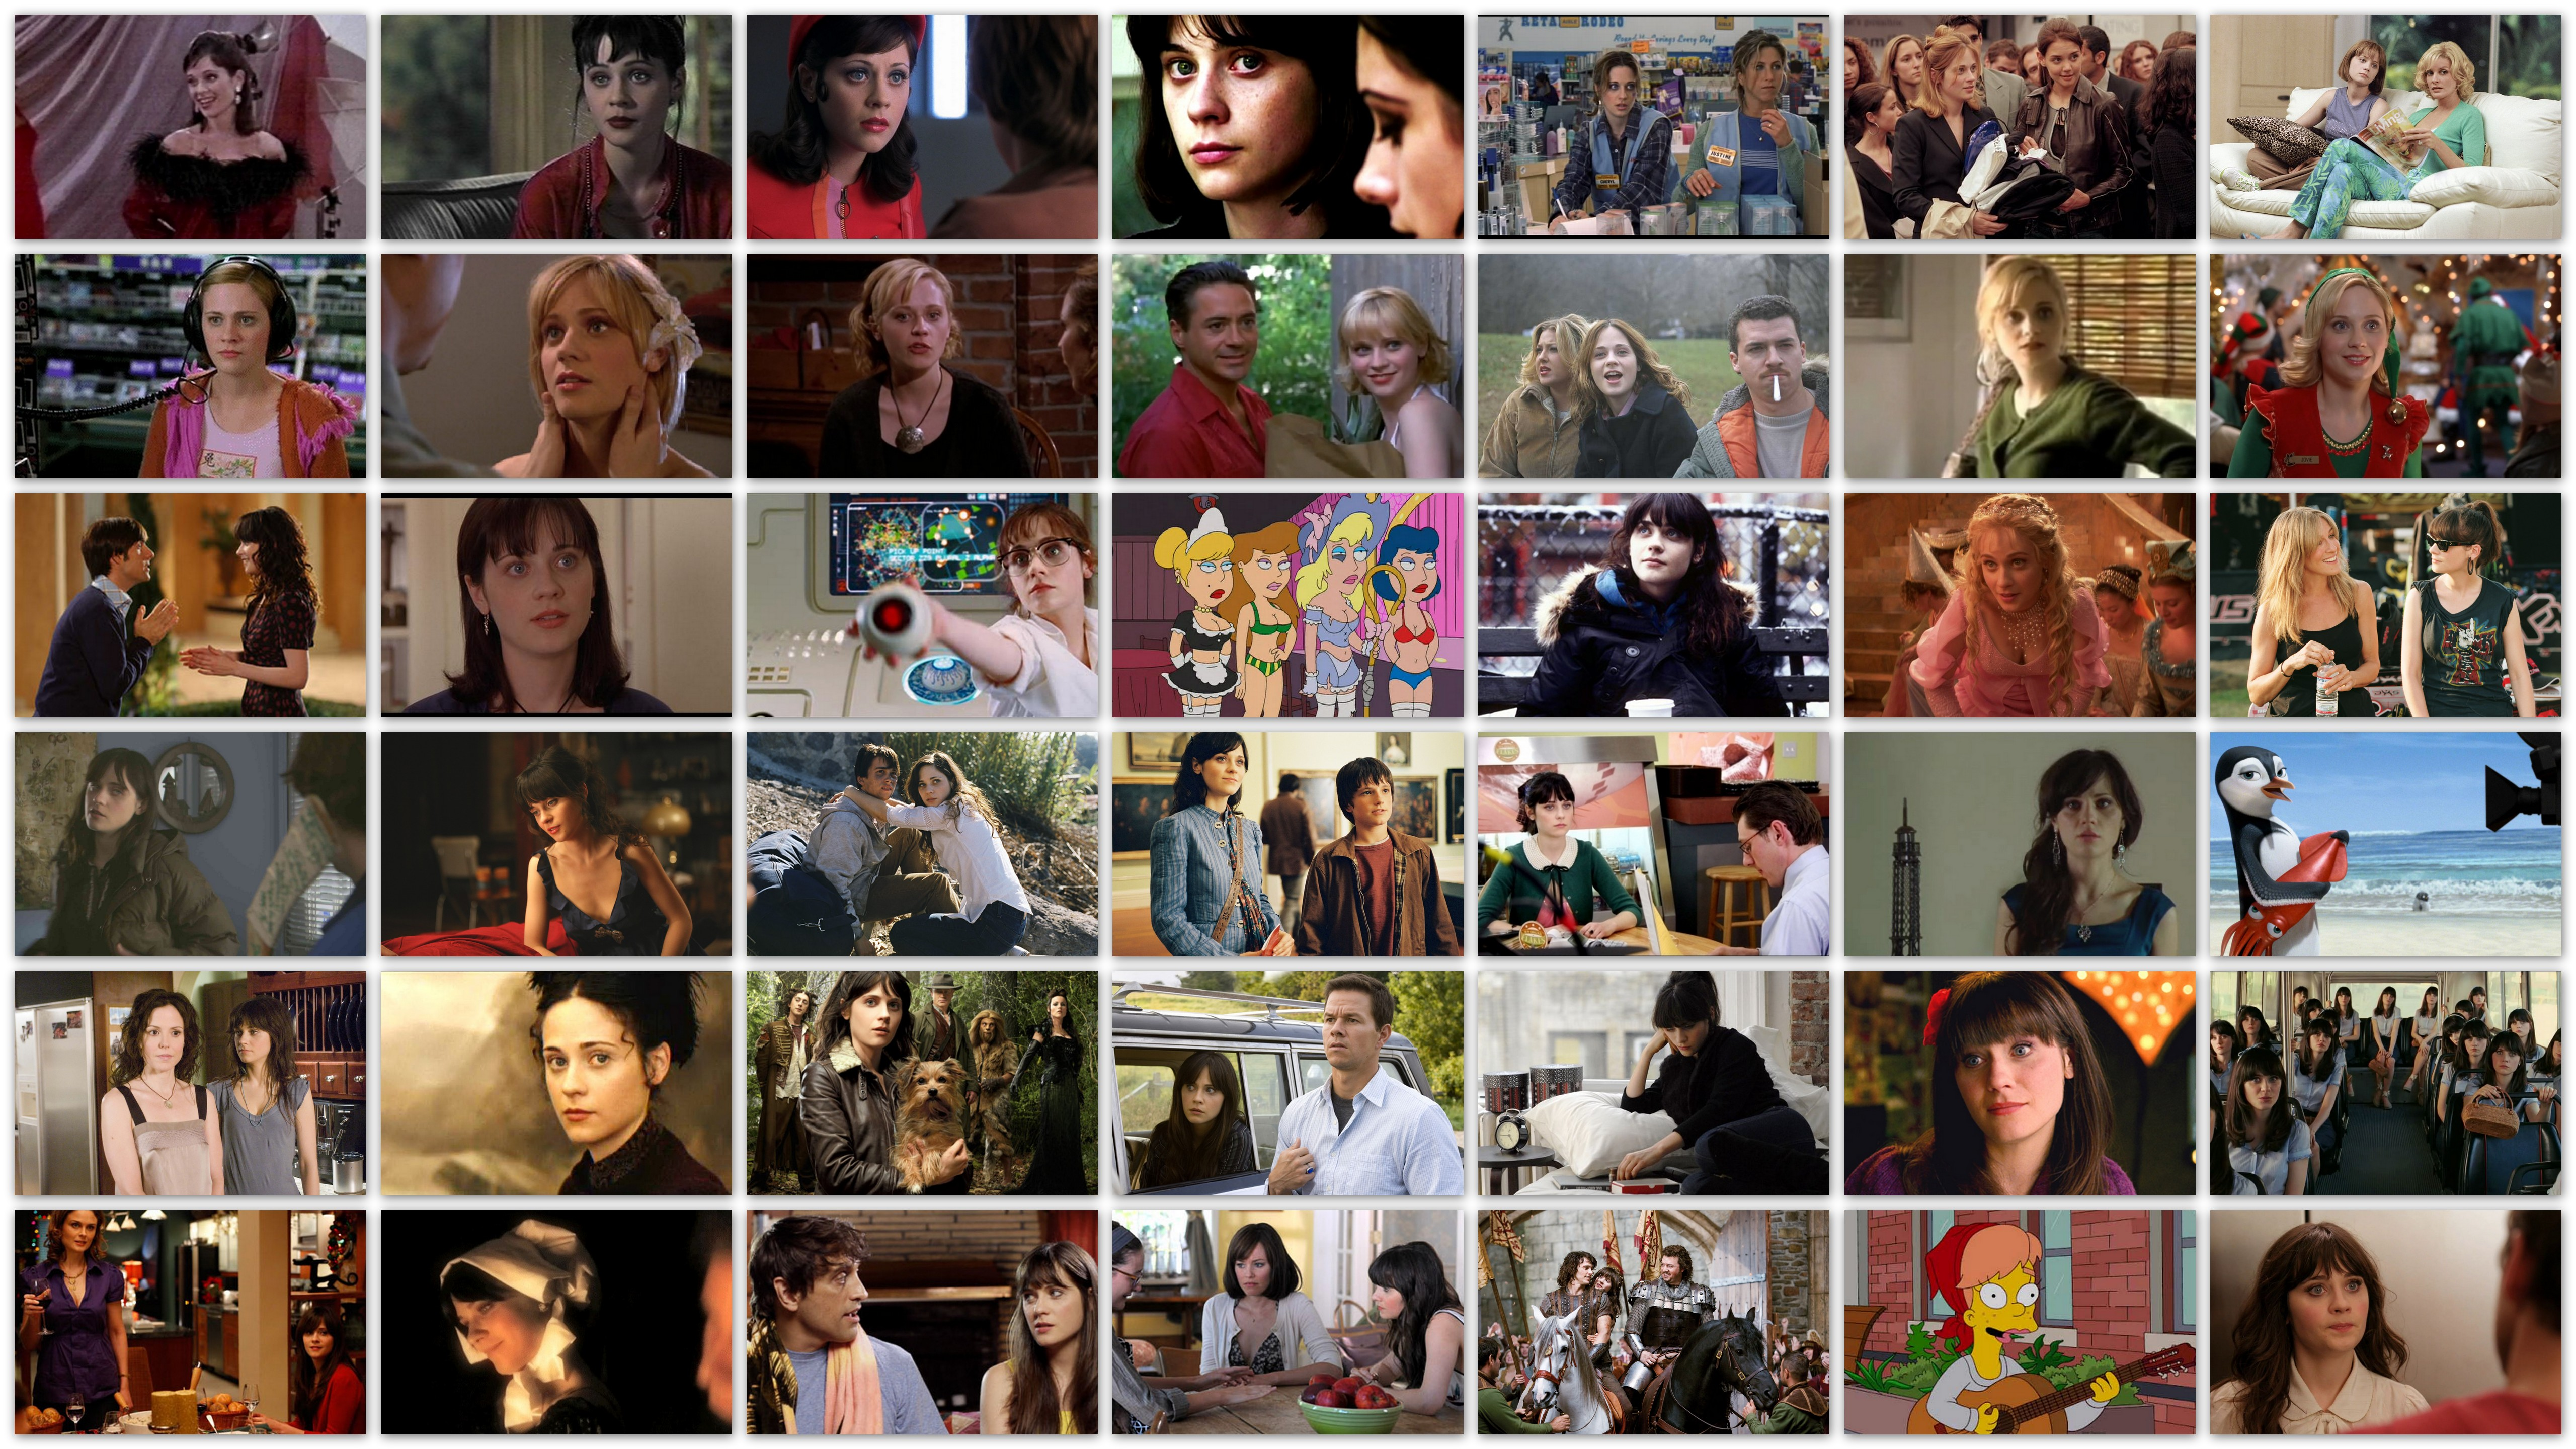 Overview of roles Zooey Deschanel movies pictures